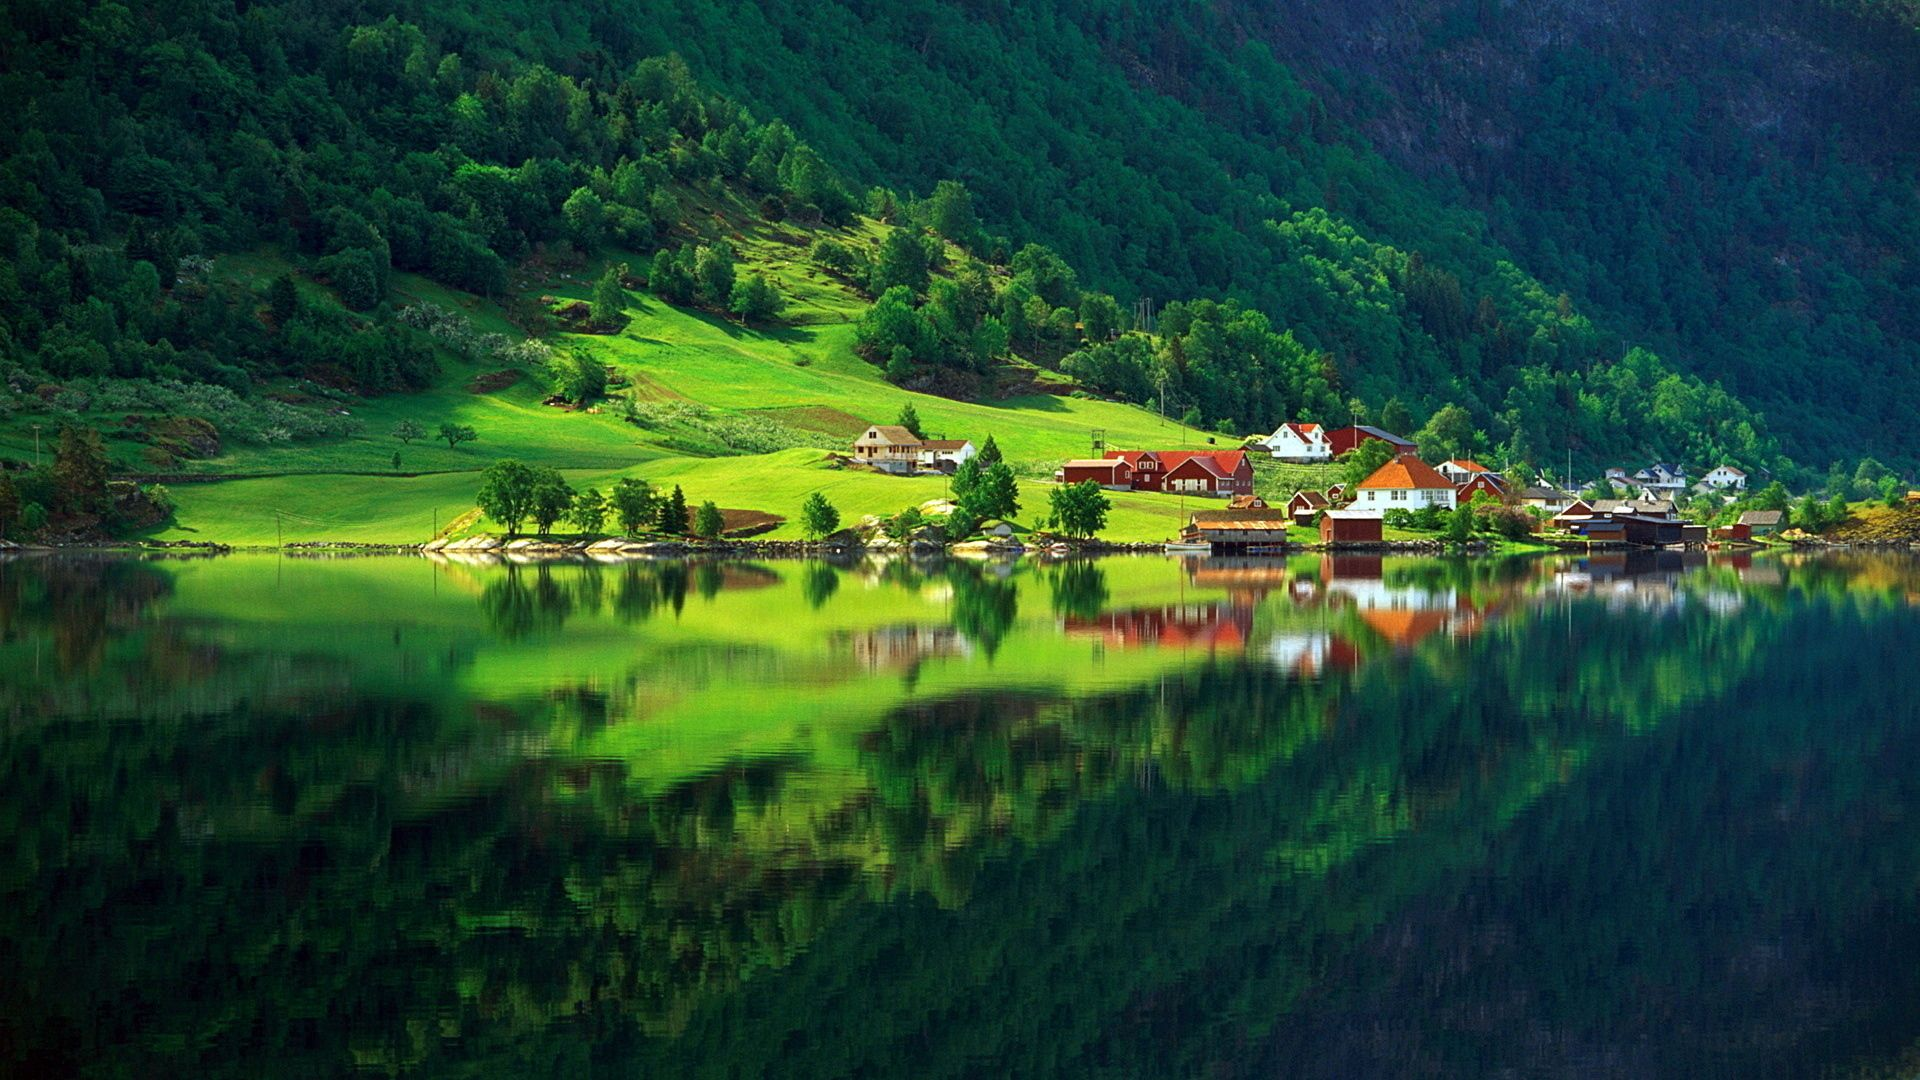 122702 Screensavers and Wallpapers Summer for phone. Download Lake, Summer, Nature, Houses, Mountain, Reflection, Shore, Bank, Village, Foot pictures for free